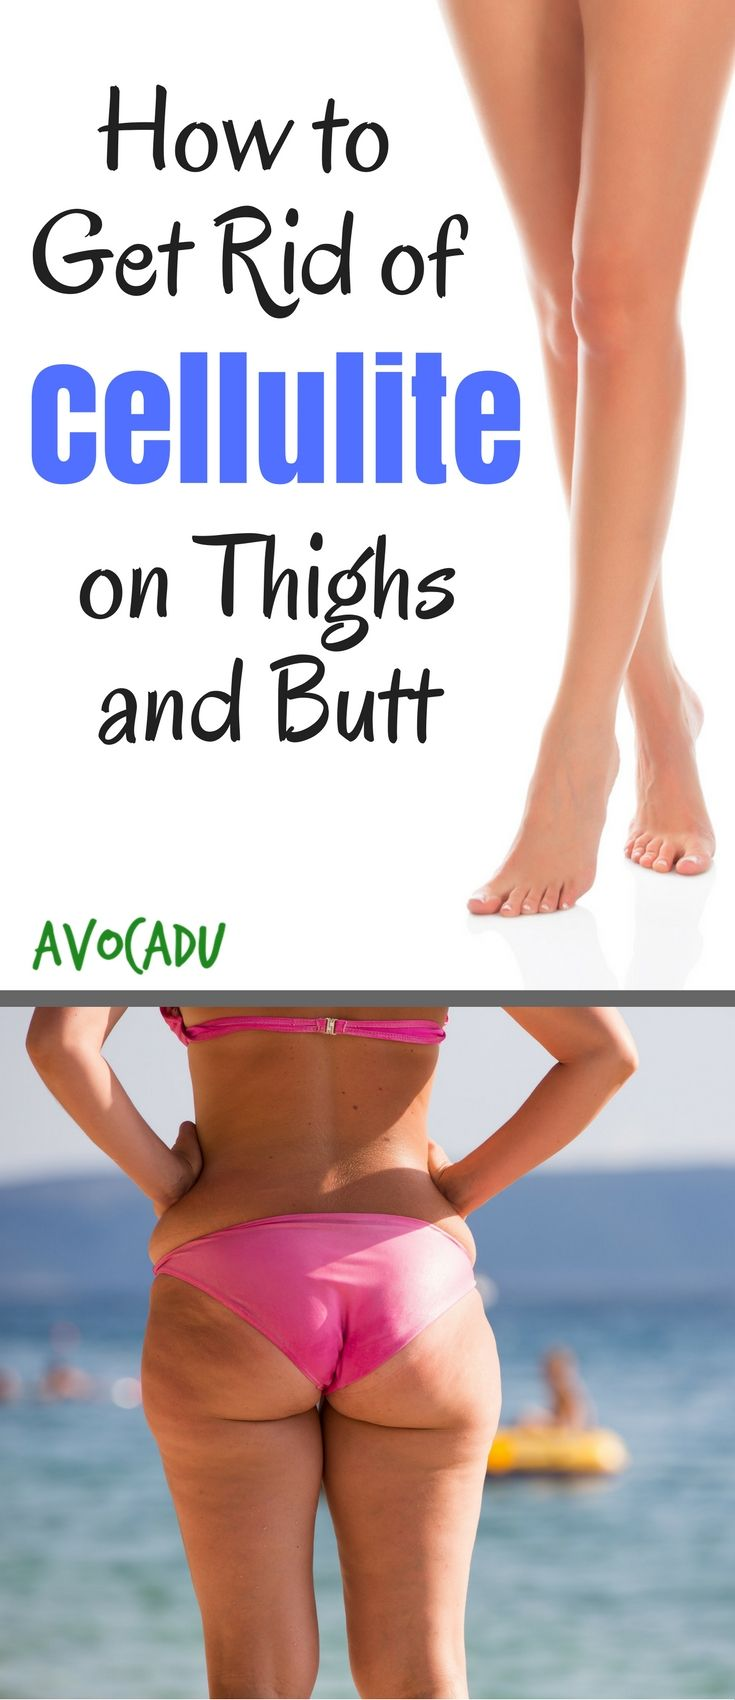 how to get rid of cellulite on butt and thighs